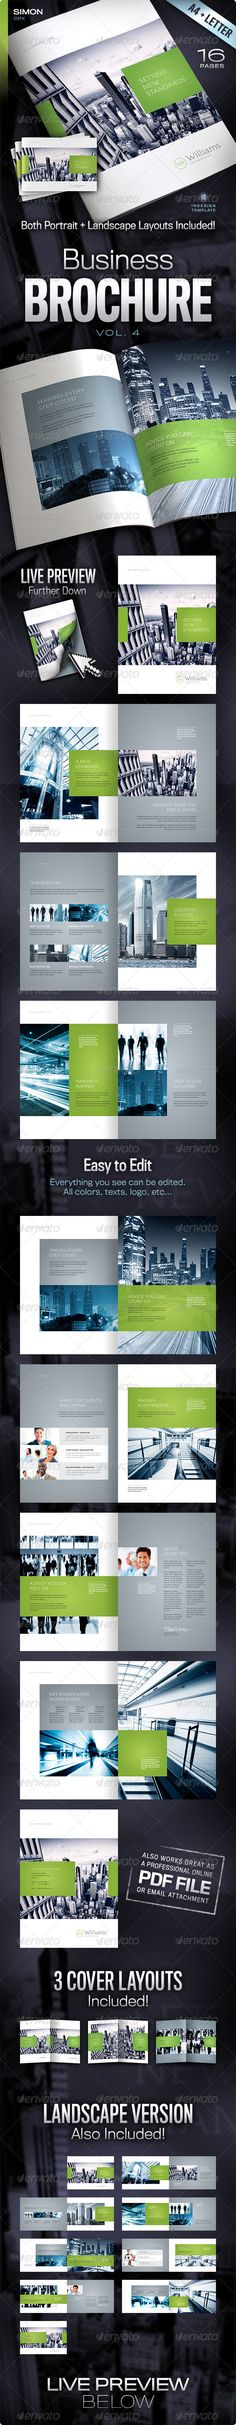 Company Profile Company profile, Profile and Template - professional business profile template